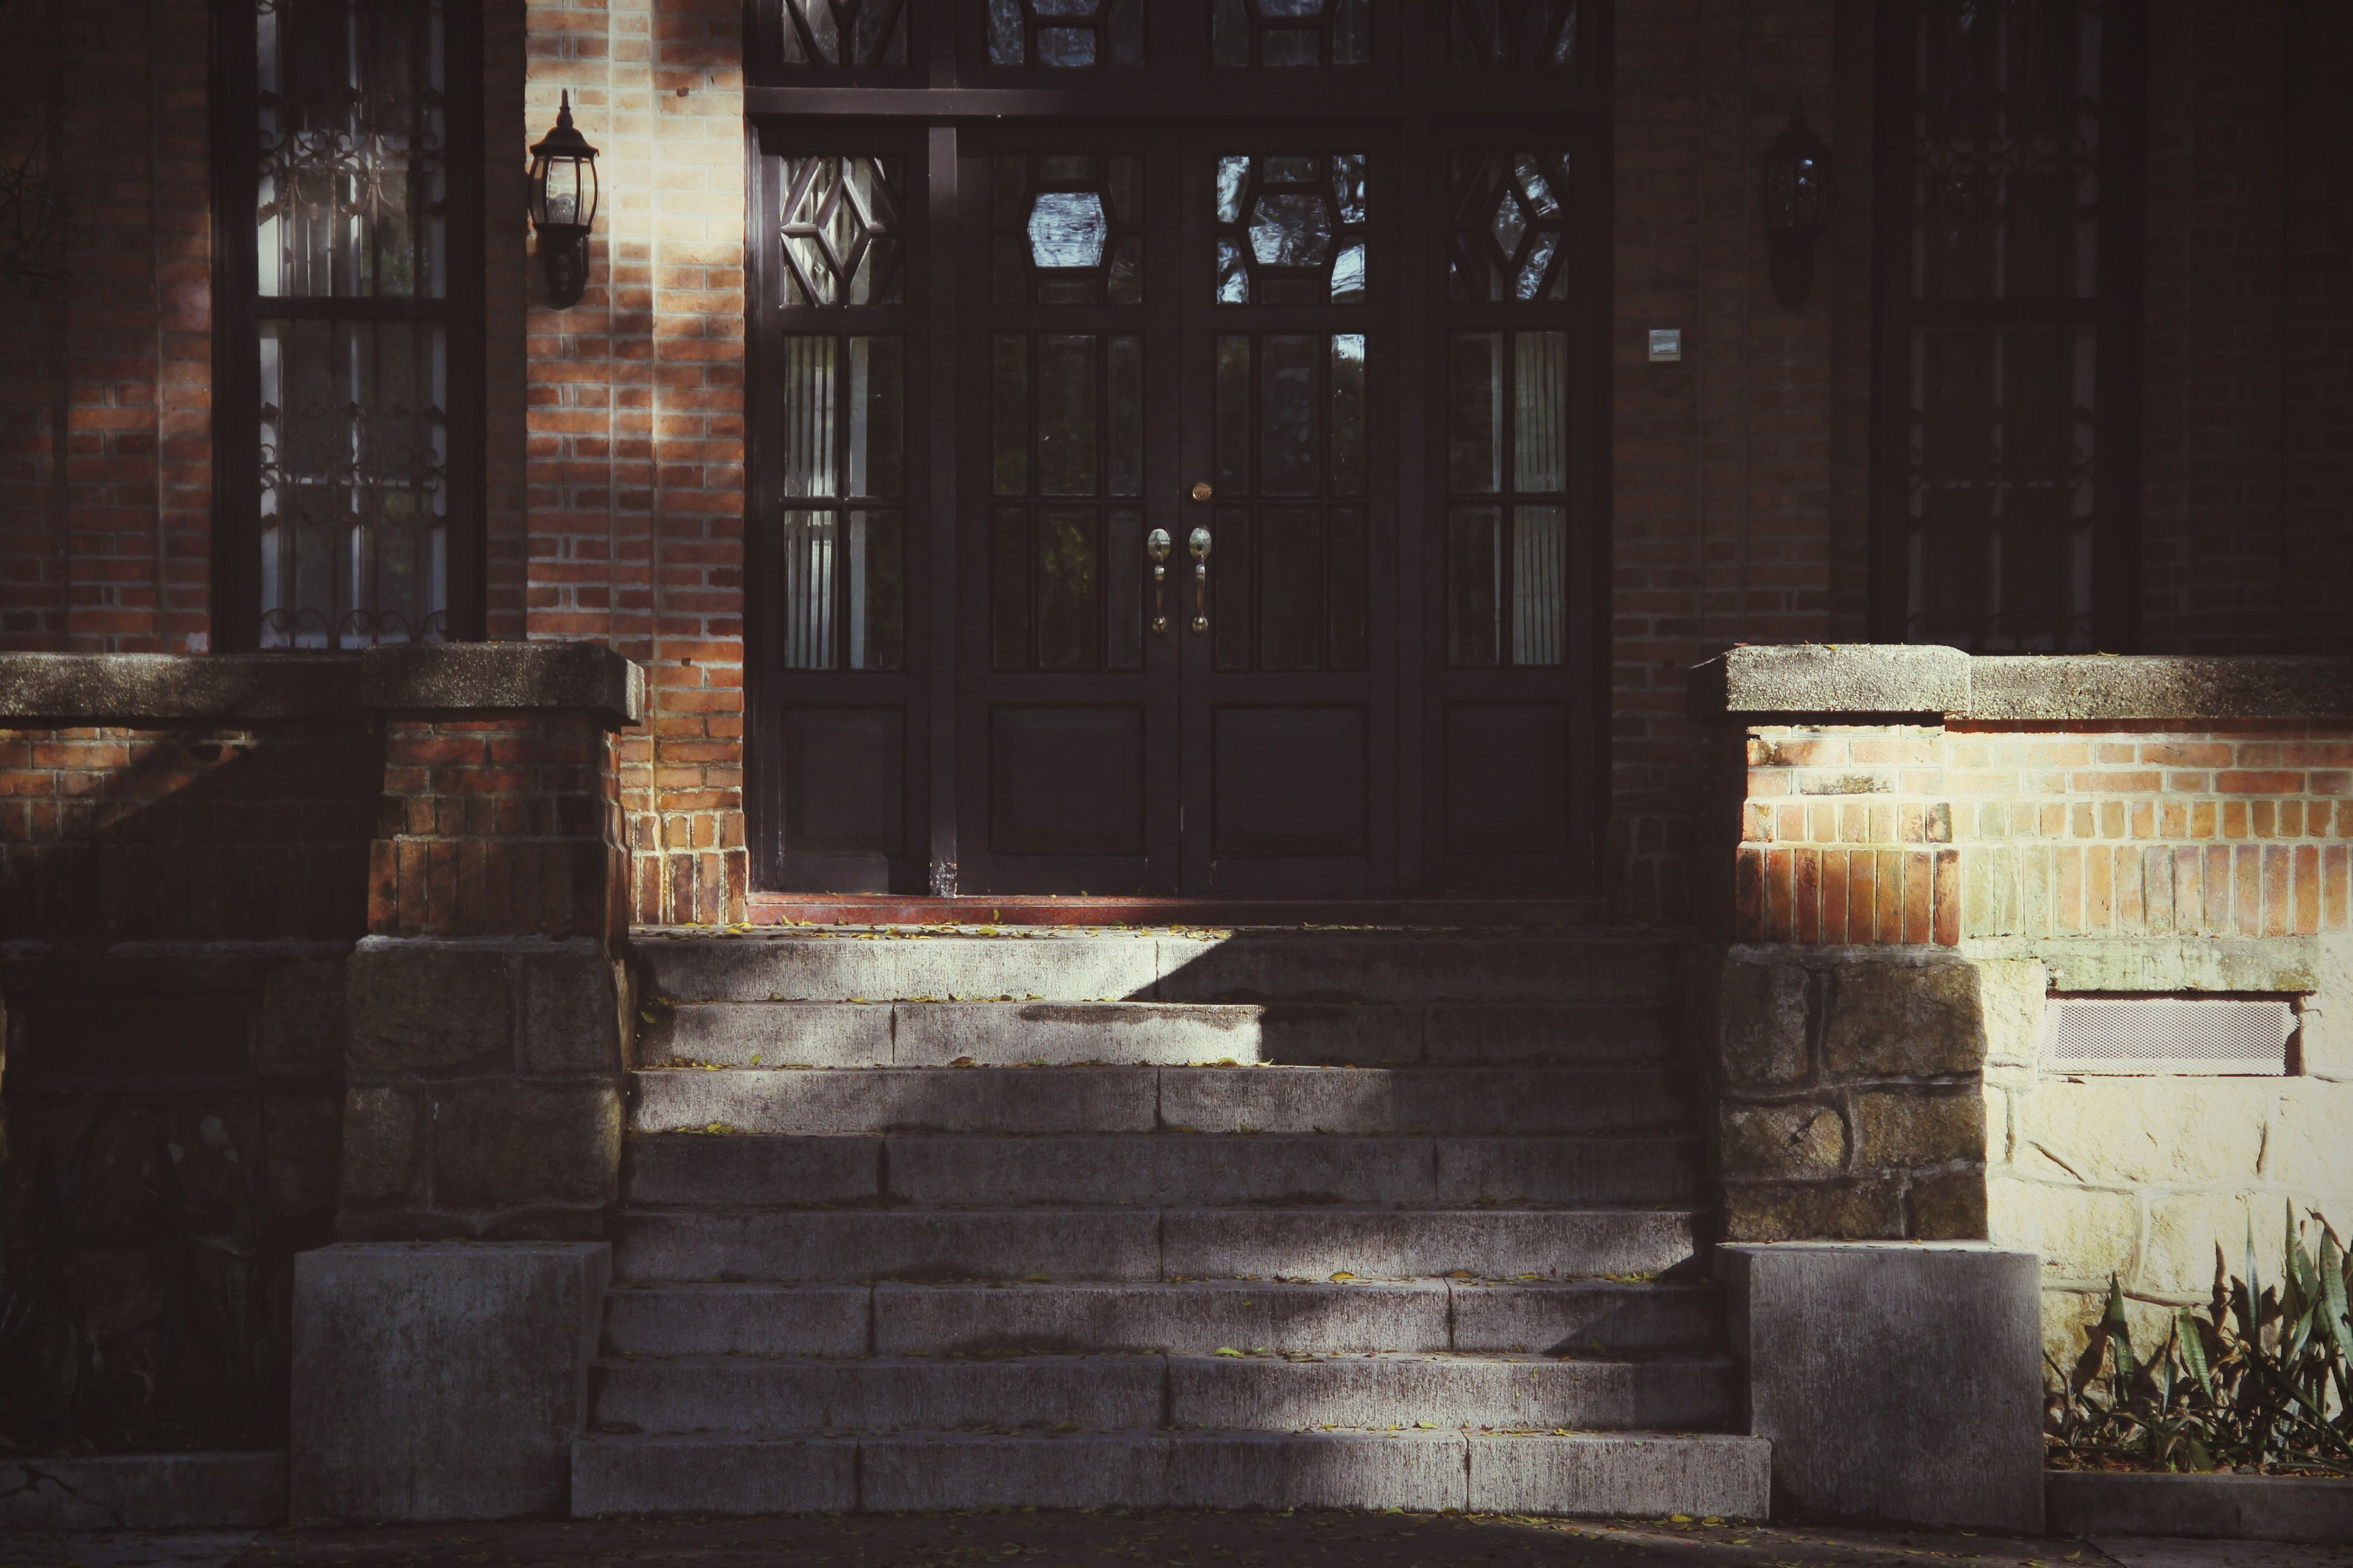 architecture, built structure, building exterior, window, building, sunlight, house, door, reflection, glass - material, day, wall - building feature, no people, indoors, brick wall, entrance, old, abandoned, city